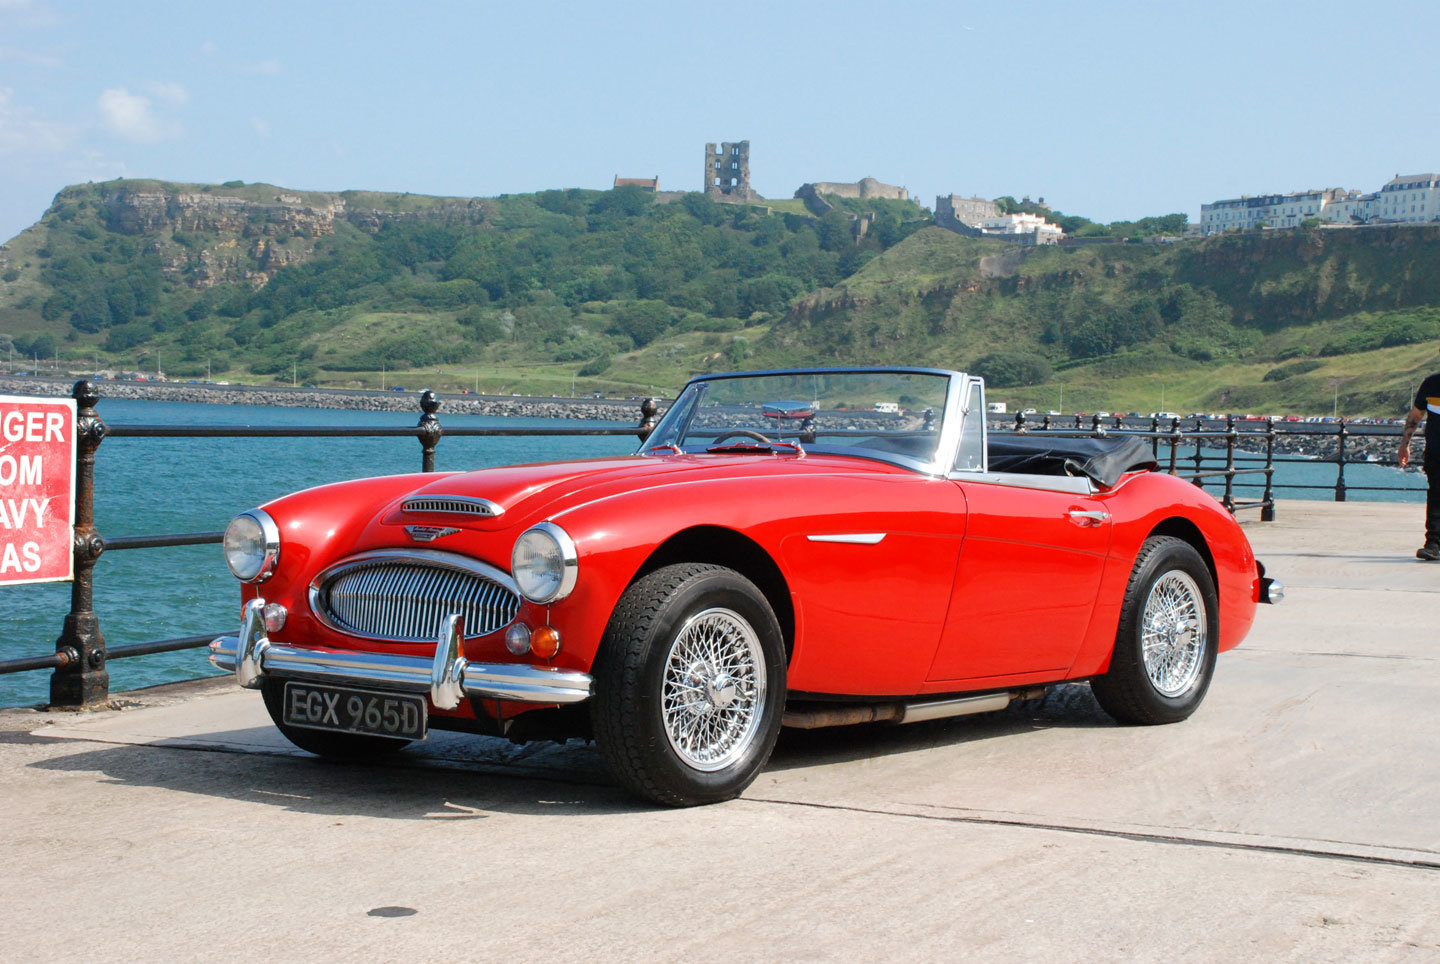 1966 Austin Healey 3000 Mk 3 - Original UK RHD Home Market Car For Sale (picture 5 of 6)